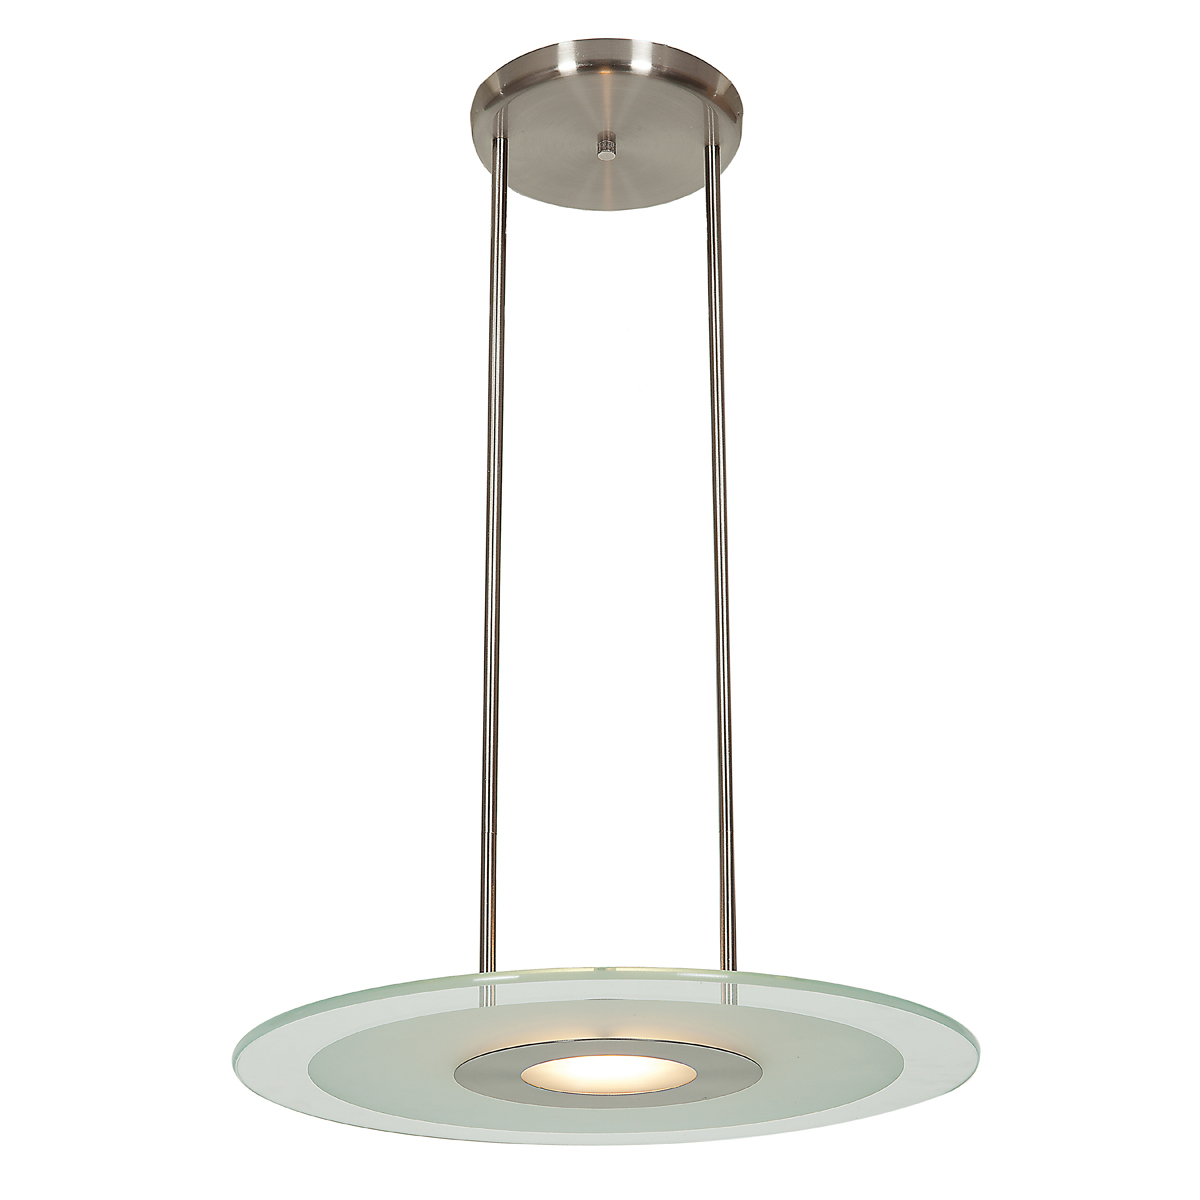 desert 8 helius lighting group tags.  helius helius lighting group exellent contemporary 1 group tags  access 50484 20 inch pendant intended desert 8 helius lighting group tags